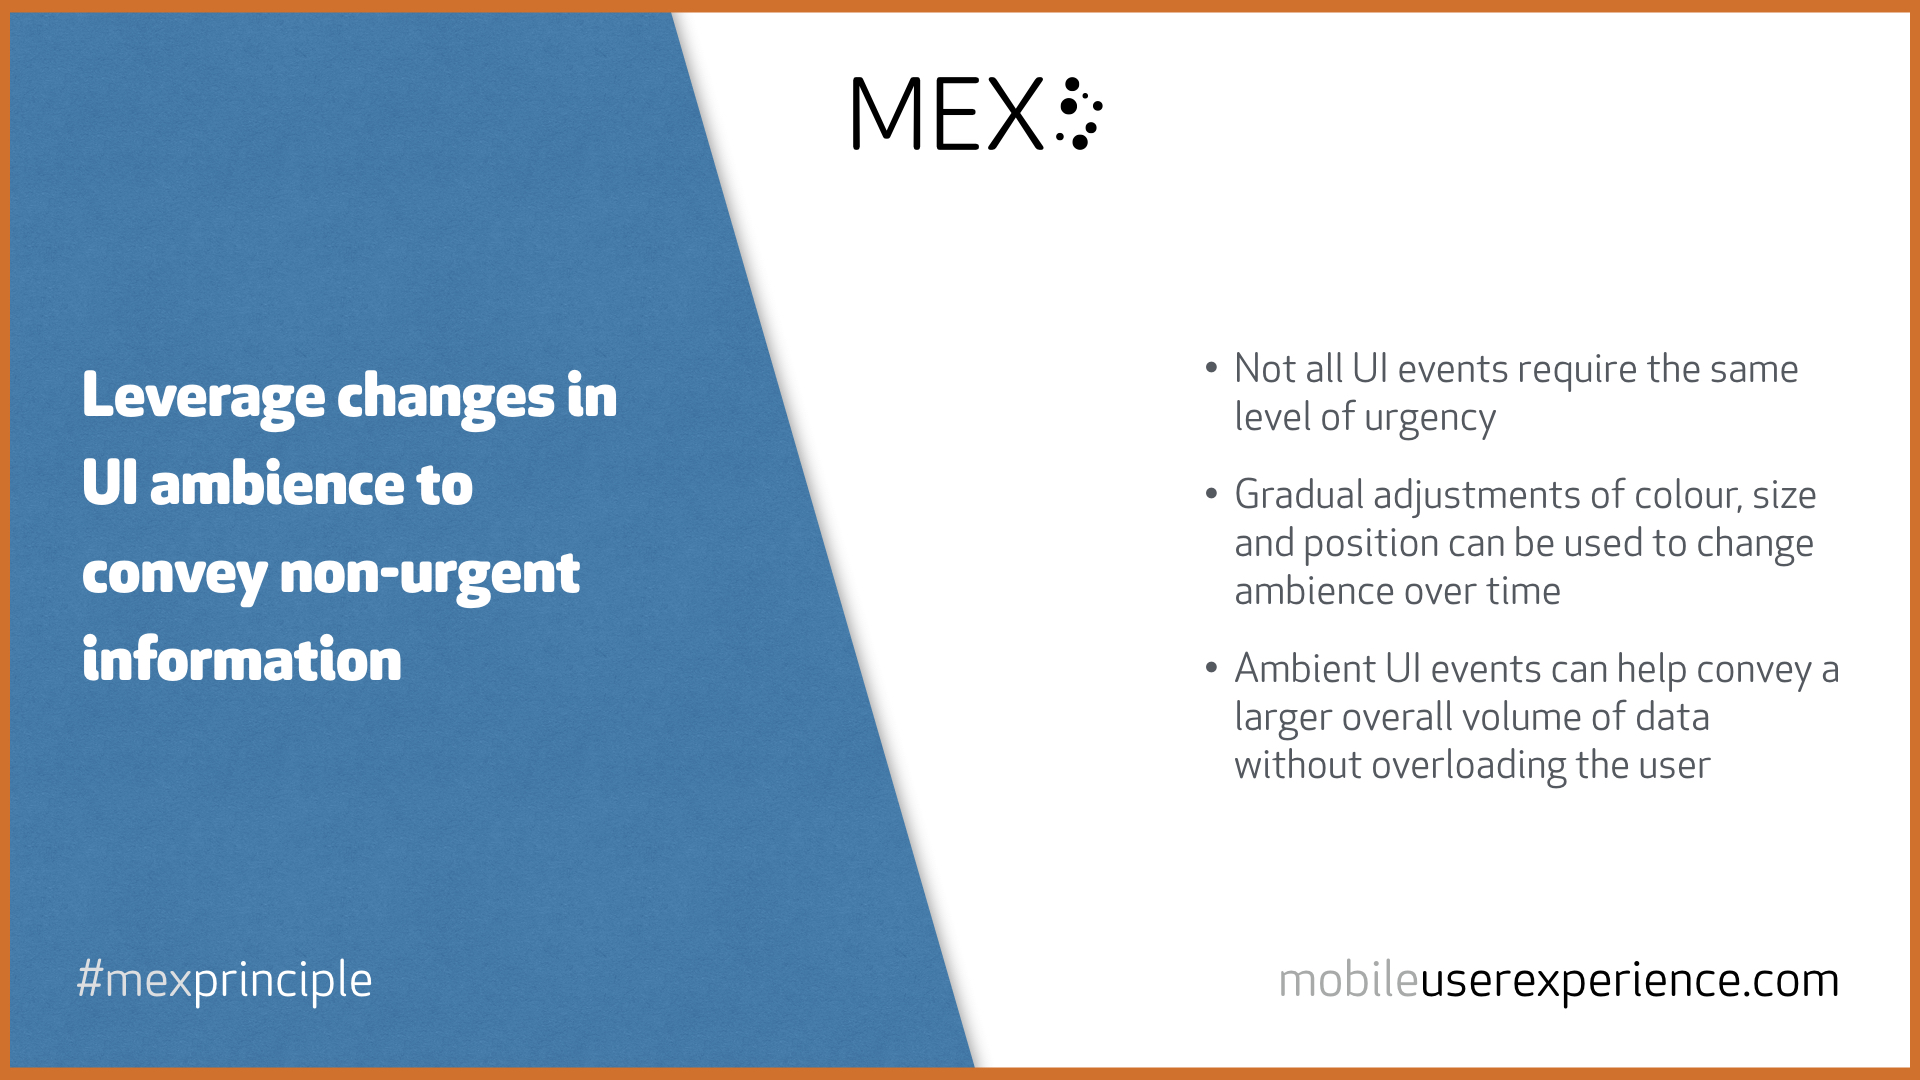 MEX Principle: Leverage changes in UI ambience to convey non-urgent information